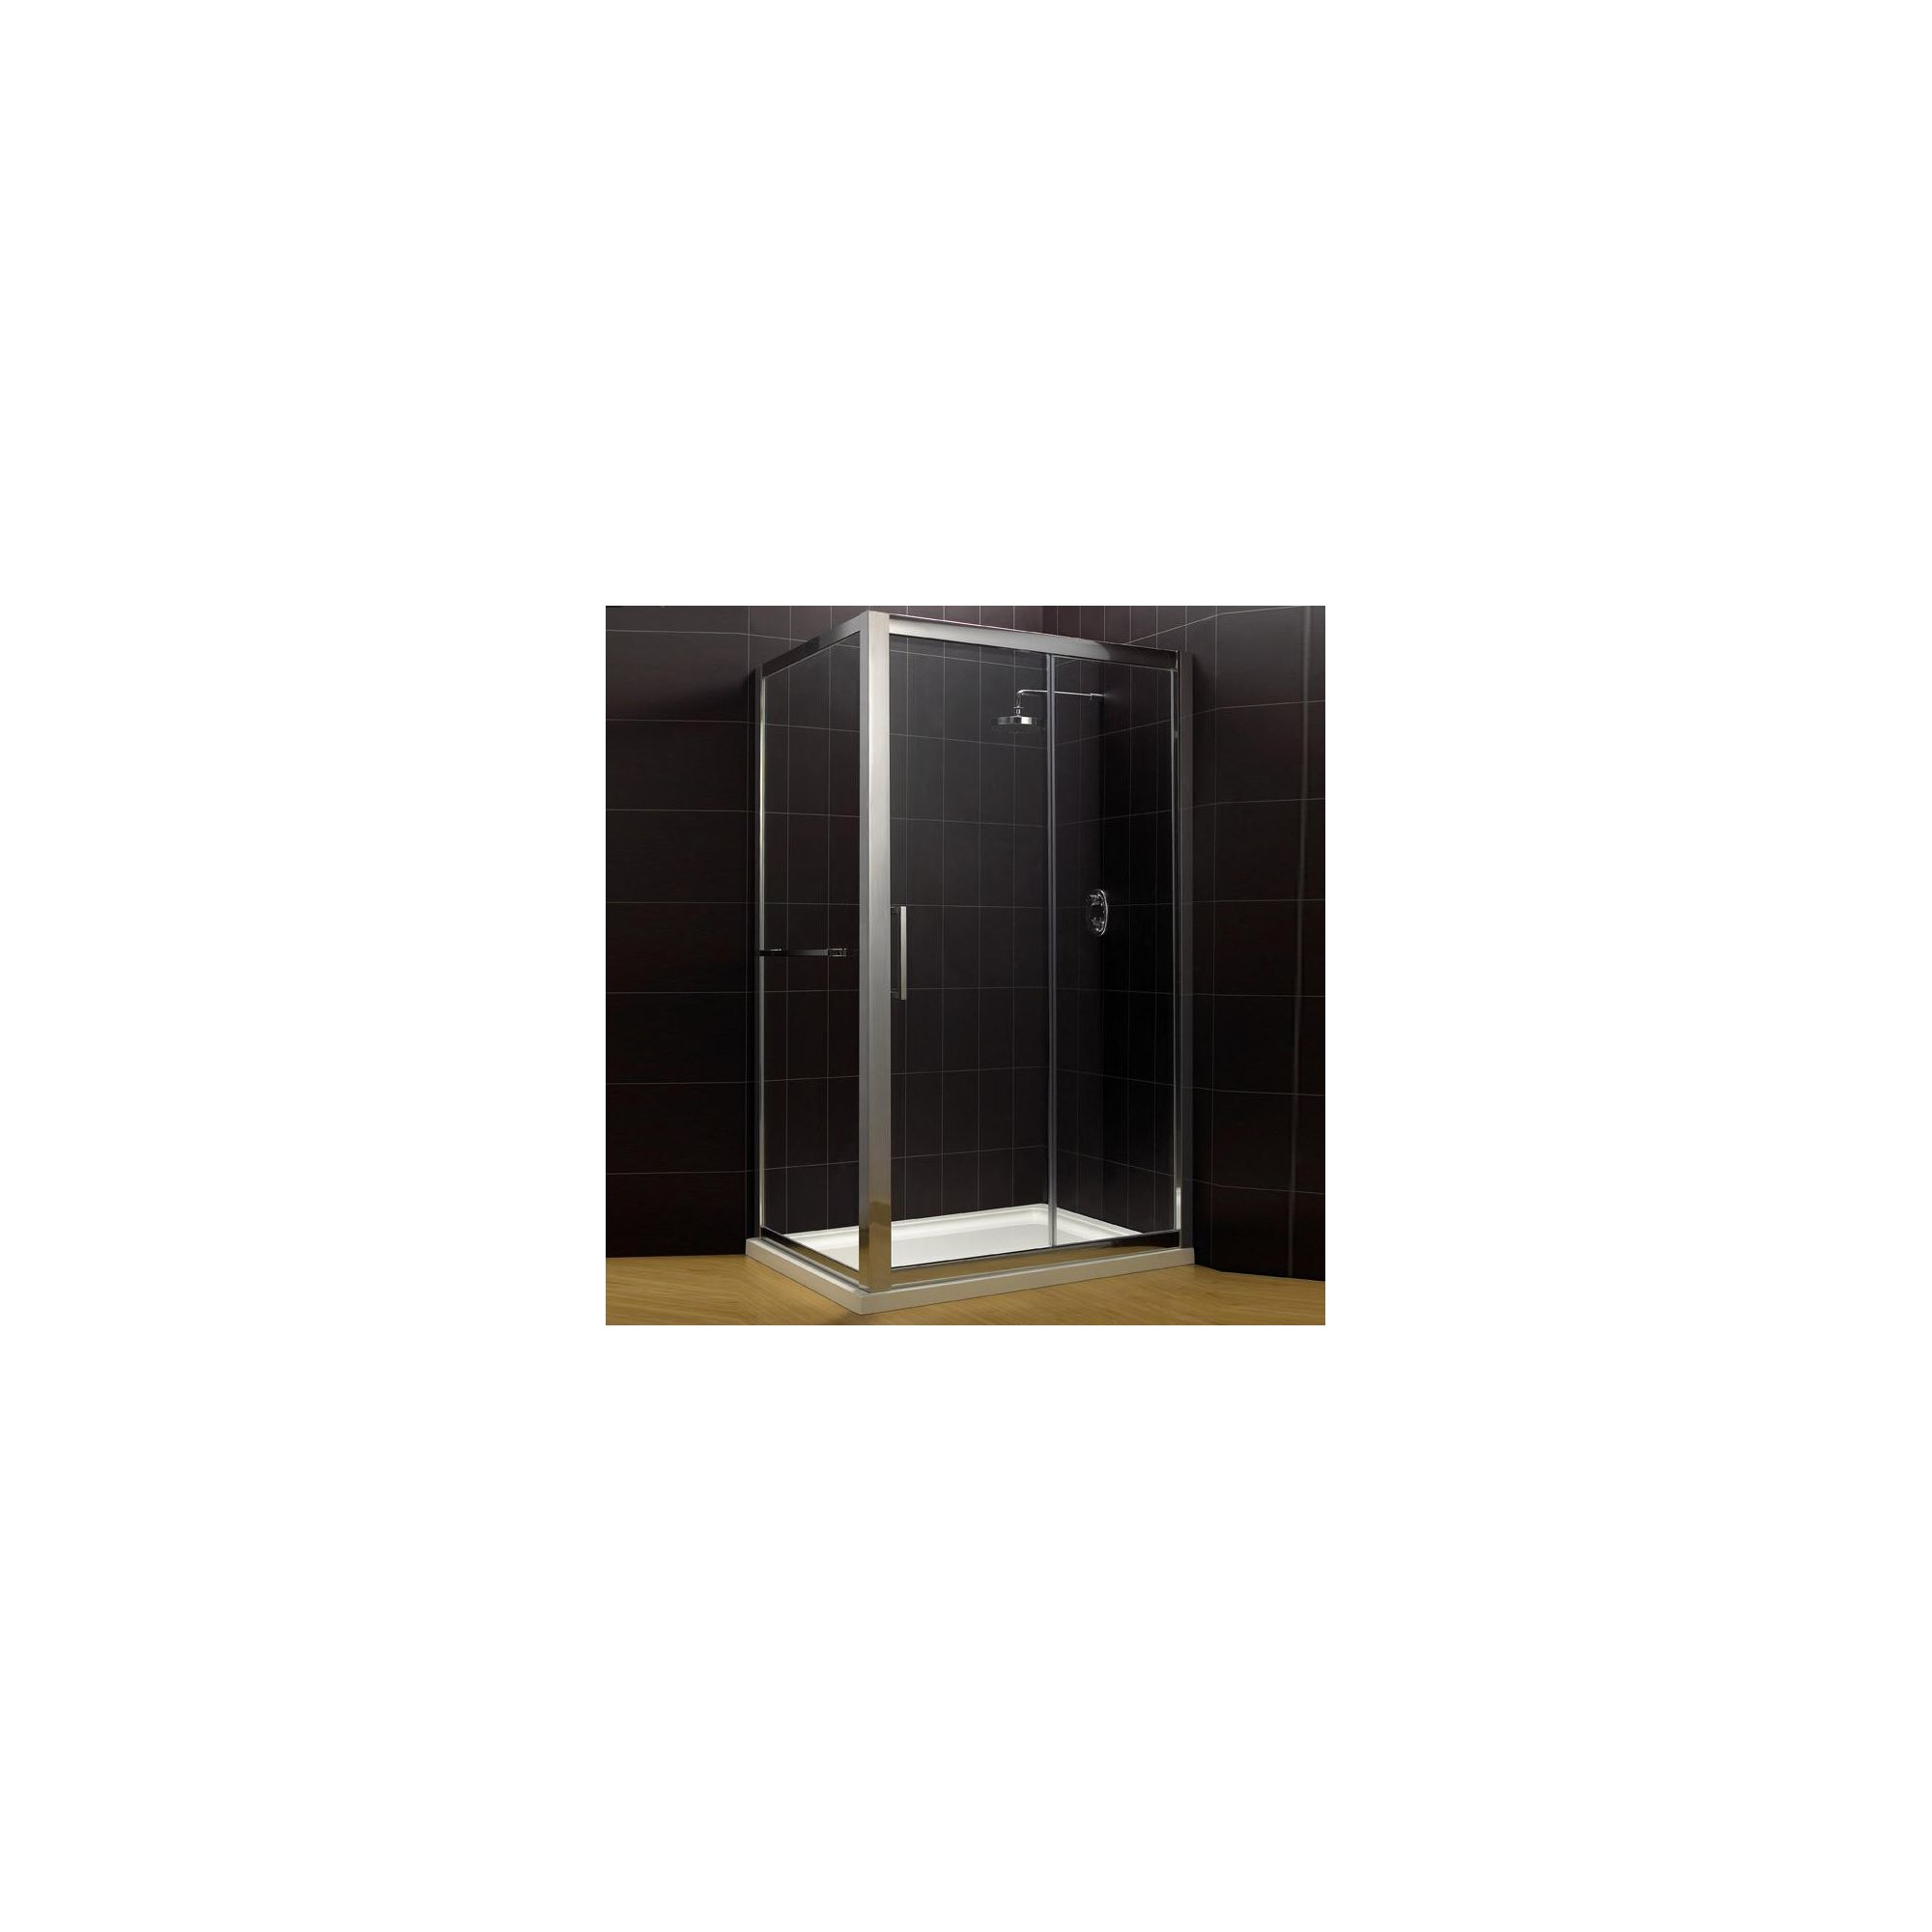 Duchy Supreme Silver Sliding Door Shower Enclosure, 1400mm x 900mm, Standard Tray, 8mm Glass at Tesco Direct